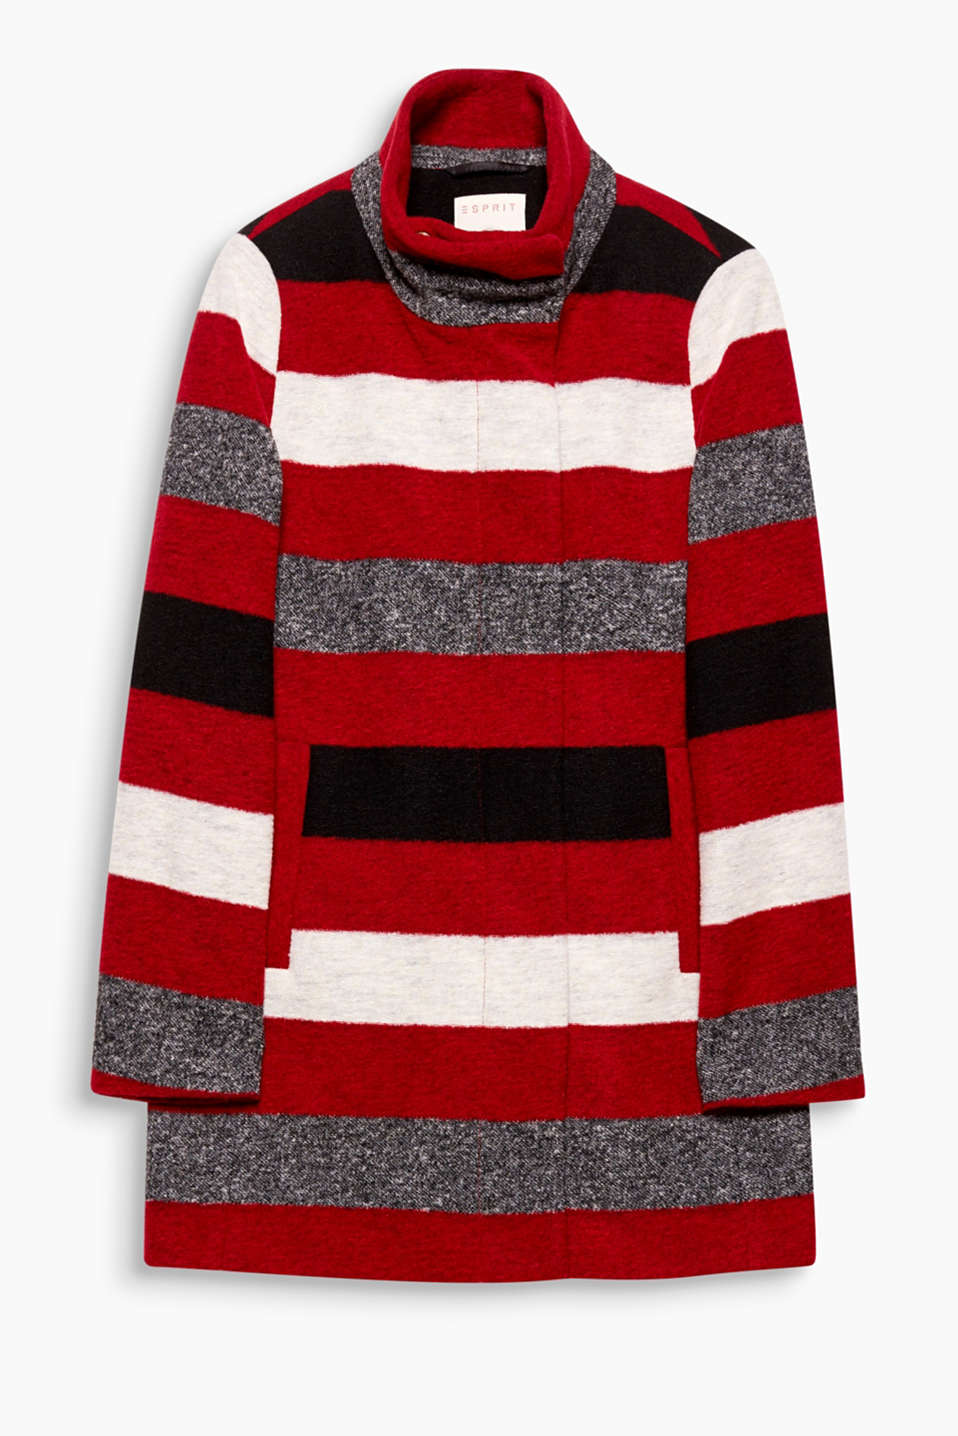 Coat with stunning stripes and a beautiful band collar - awesome autumn outerwear made of light blended wool!